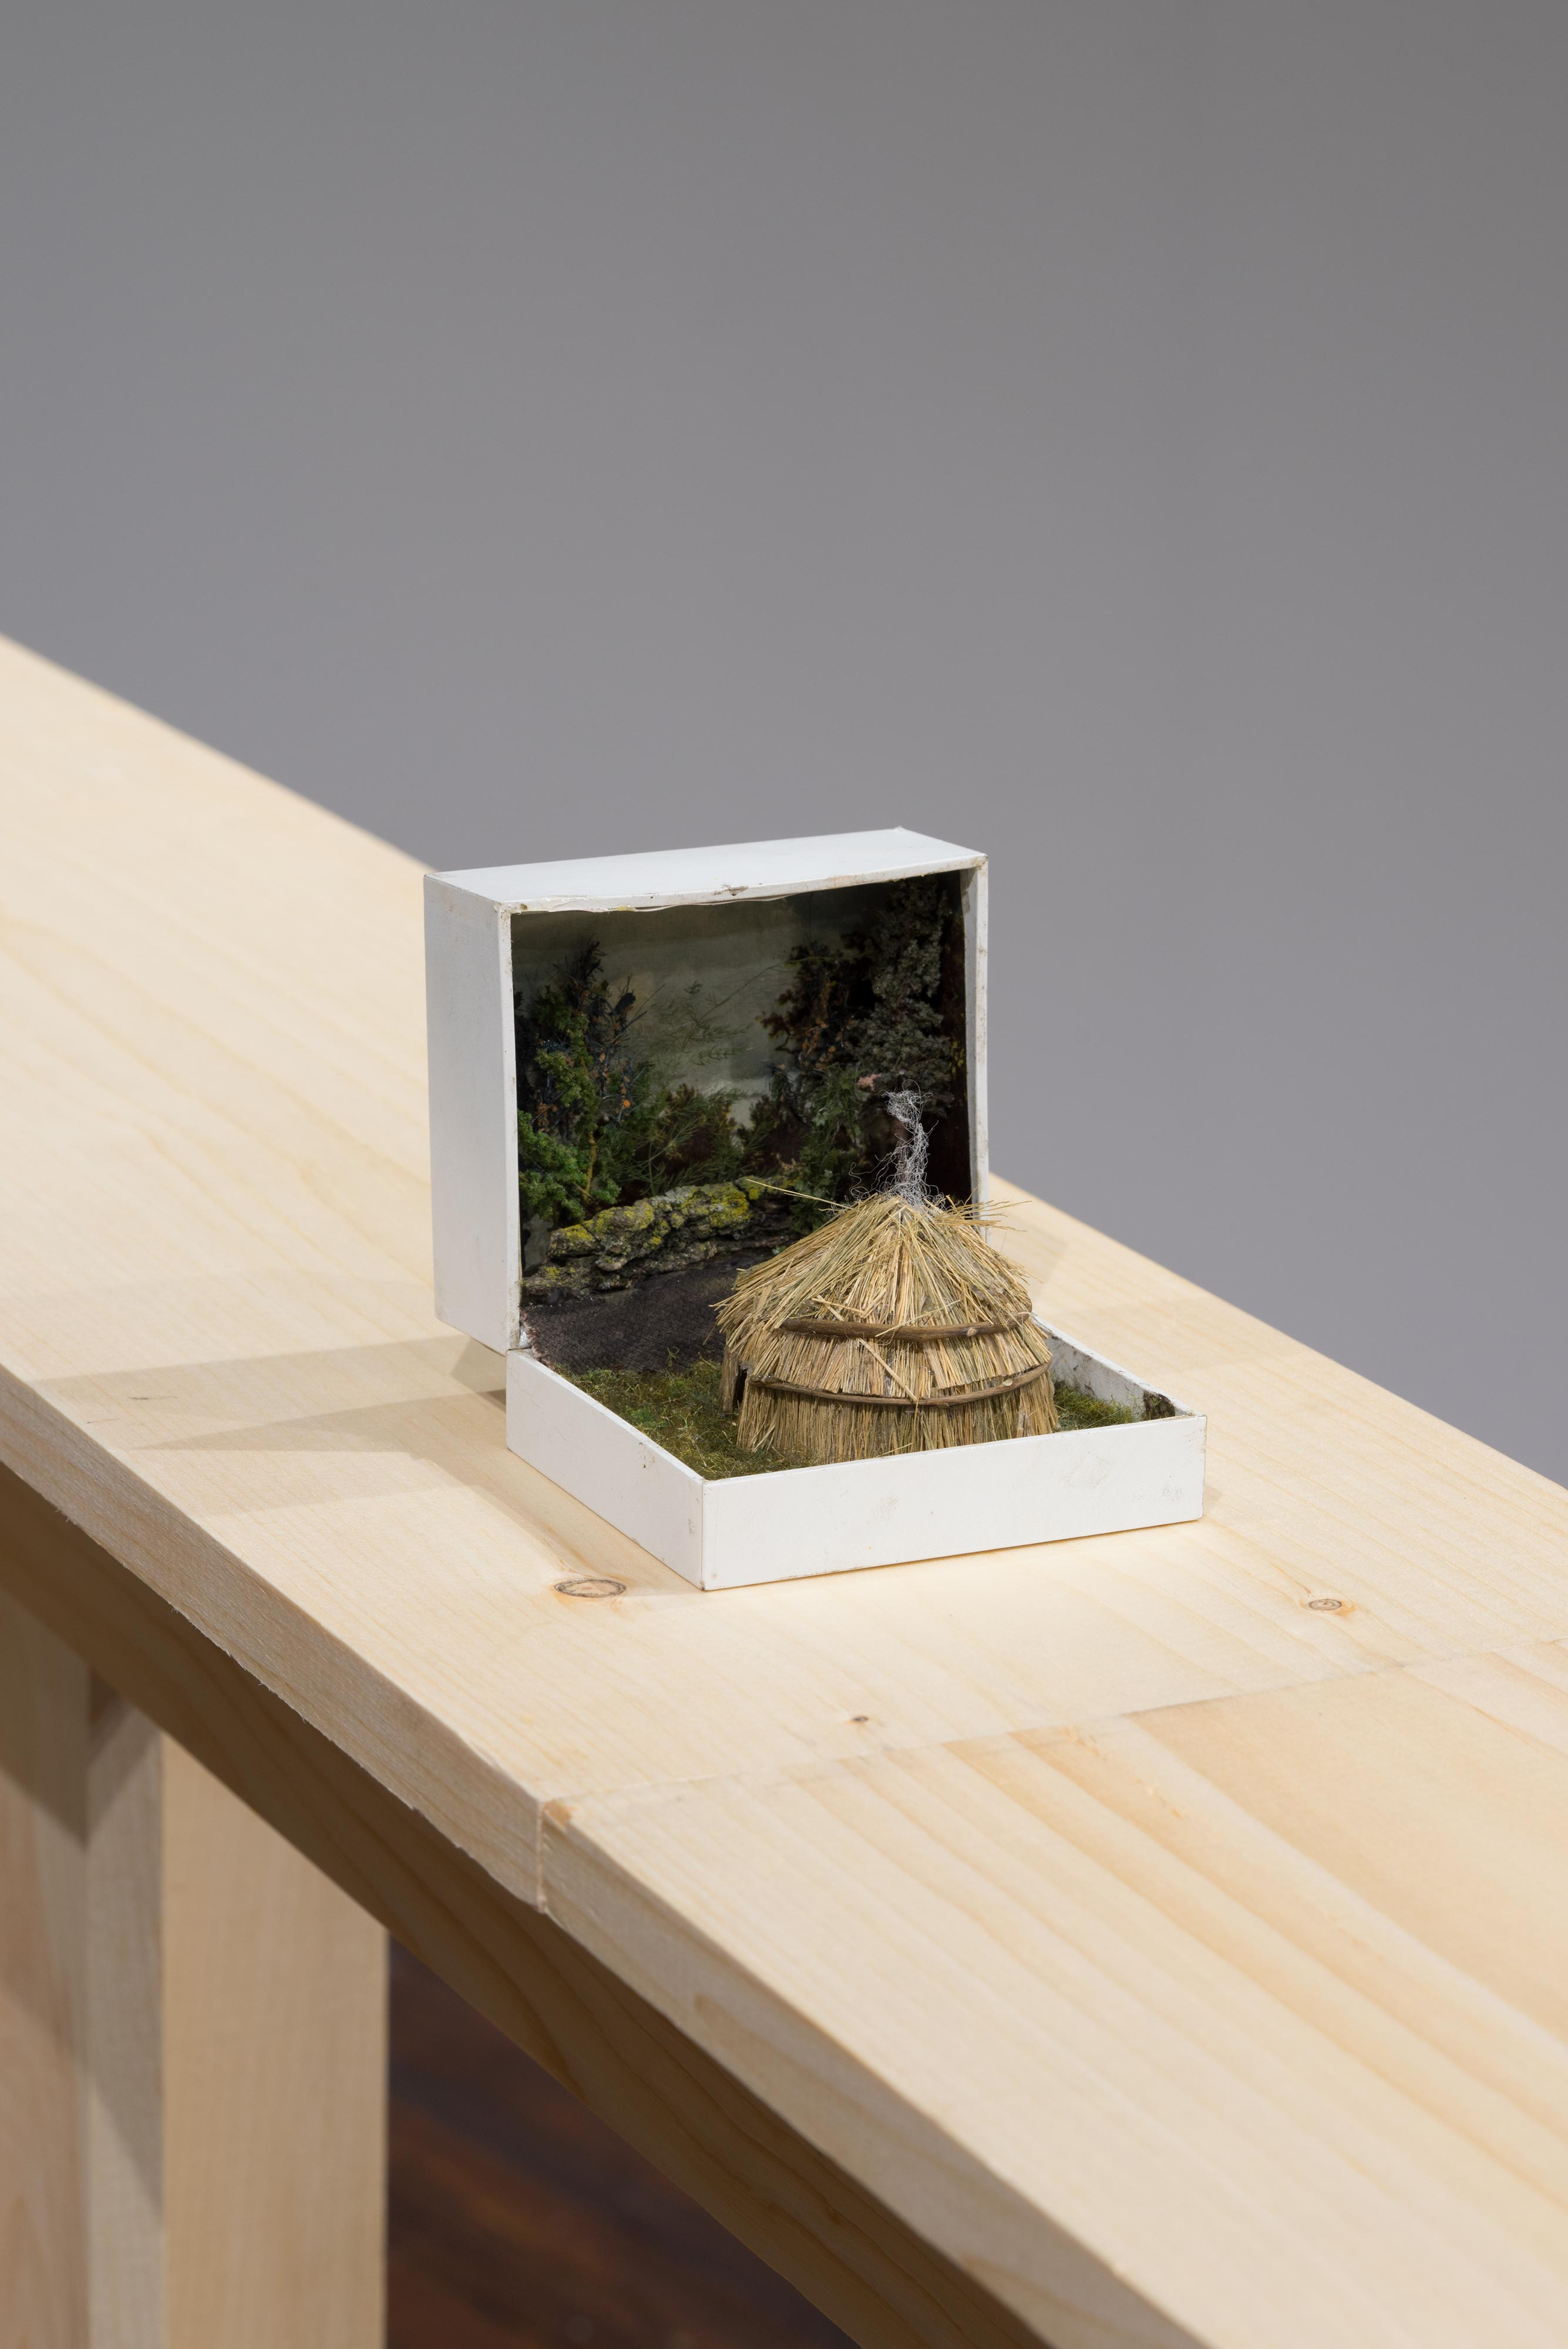 Curtis Talwst Santiago<br>Lenape Wigwam in Clearing<br>2016<br>Mixed media diorama in reclaimed jewelry box<br>3.875 x 3.3 x 4 in (9.8 x 8.4 x 10.2 cm)